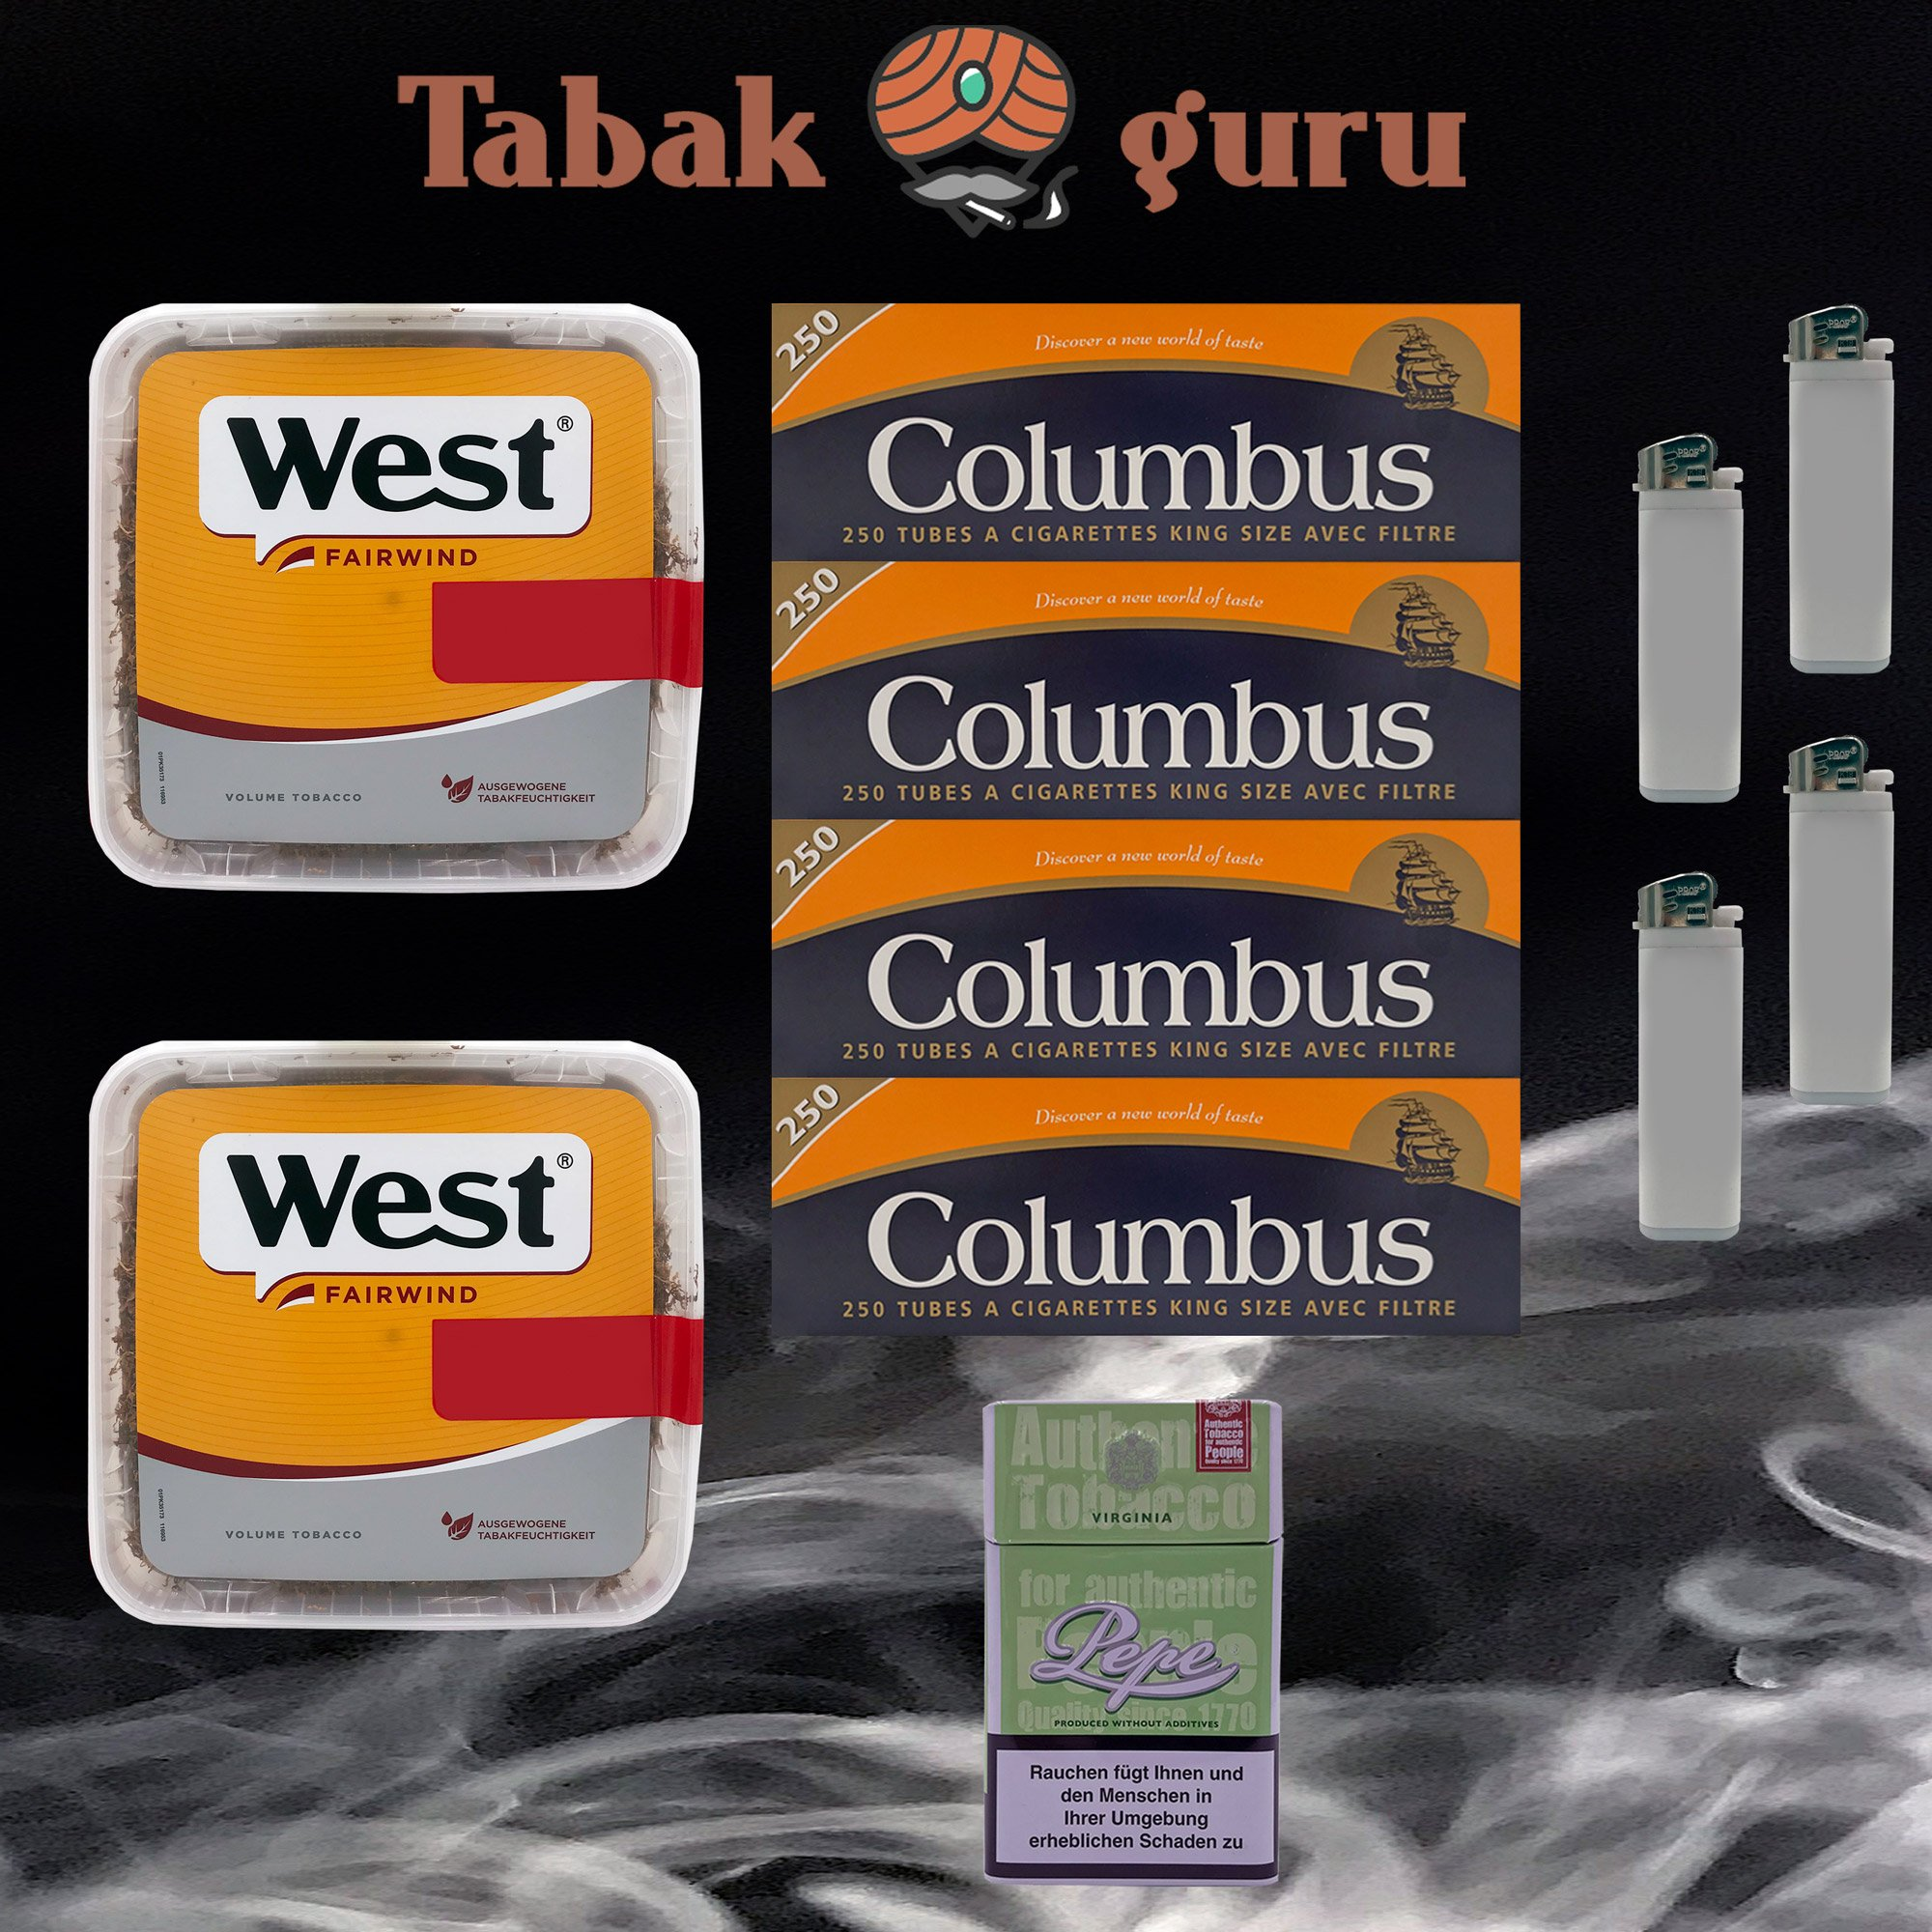 2x West Yellow Volumentabak Jumbo Box 215g + 1000 Columbus Hülsen + Zubehör